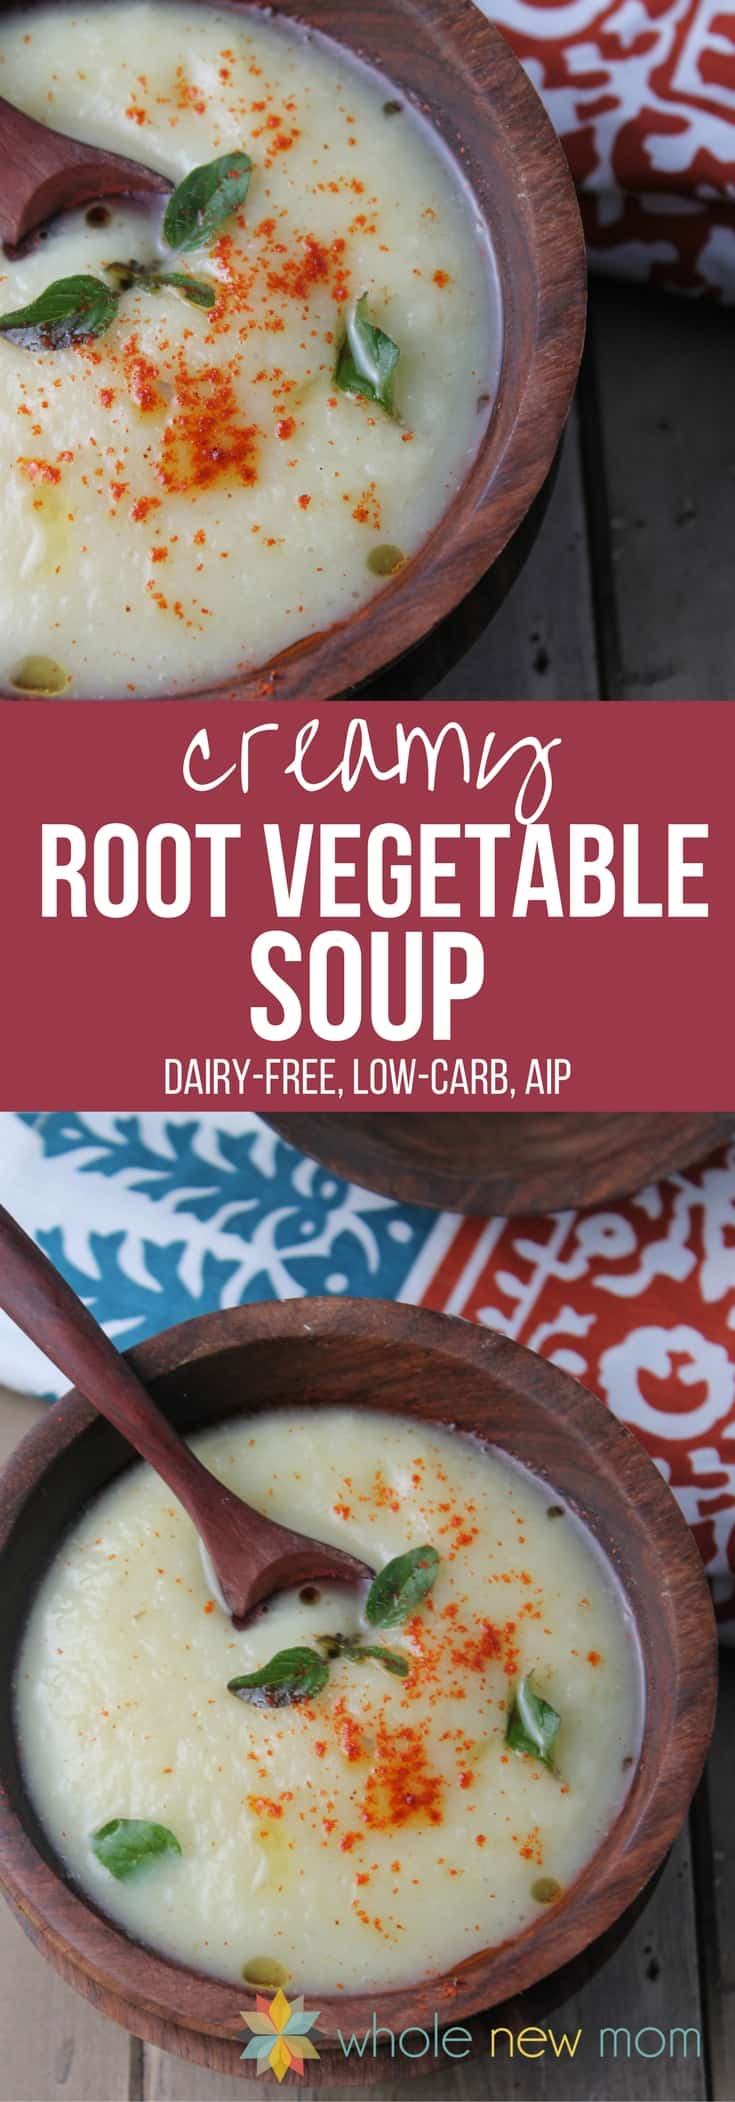 This creamy root vegetable soup is both comforting and nourishing! You wouldn't know it's paleo, low carb, dairy-free, gluten-free, and AIP friendly!